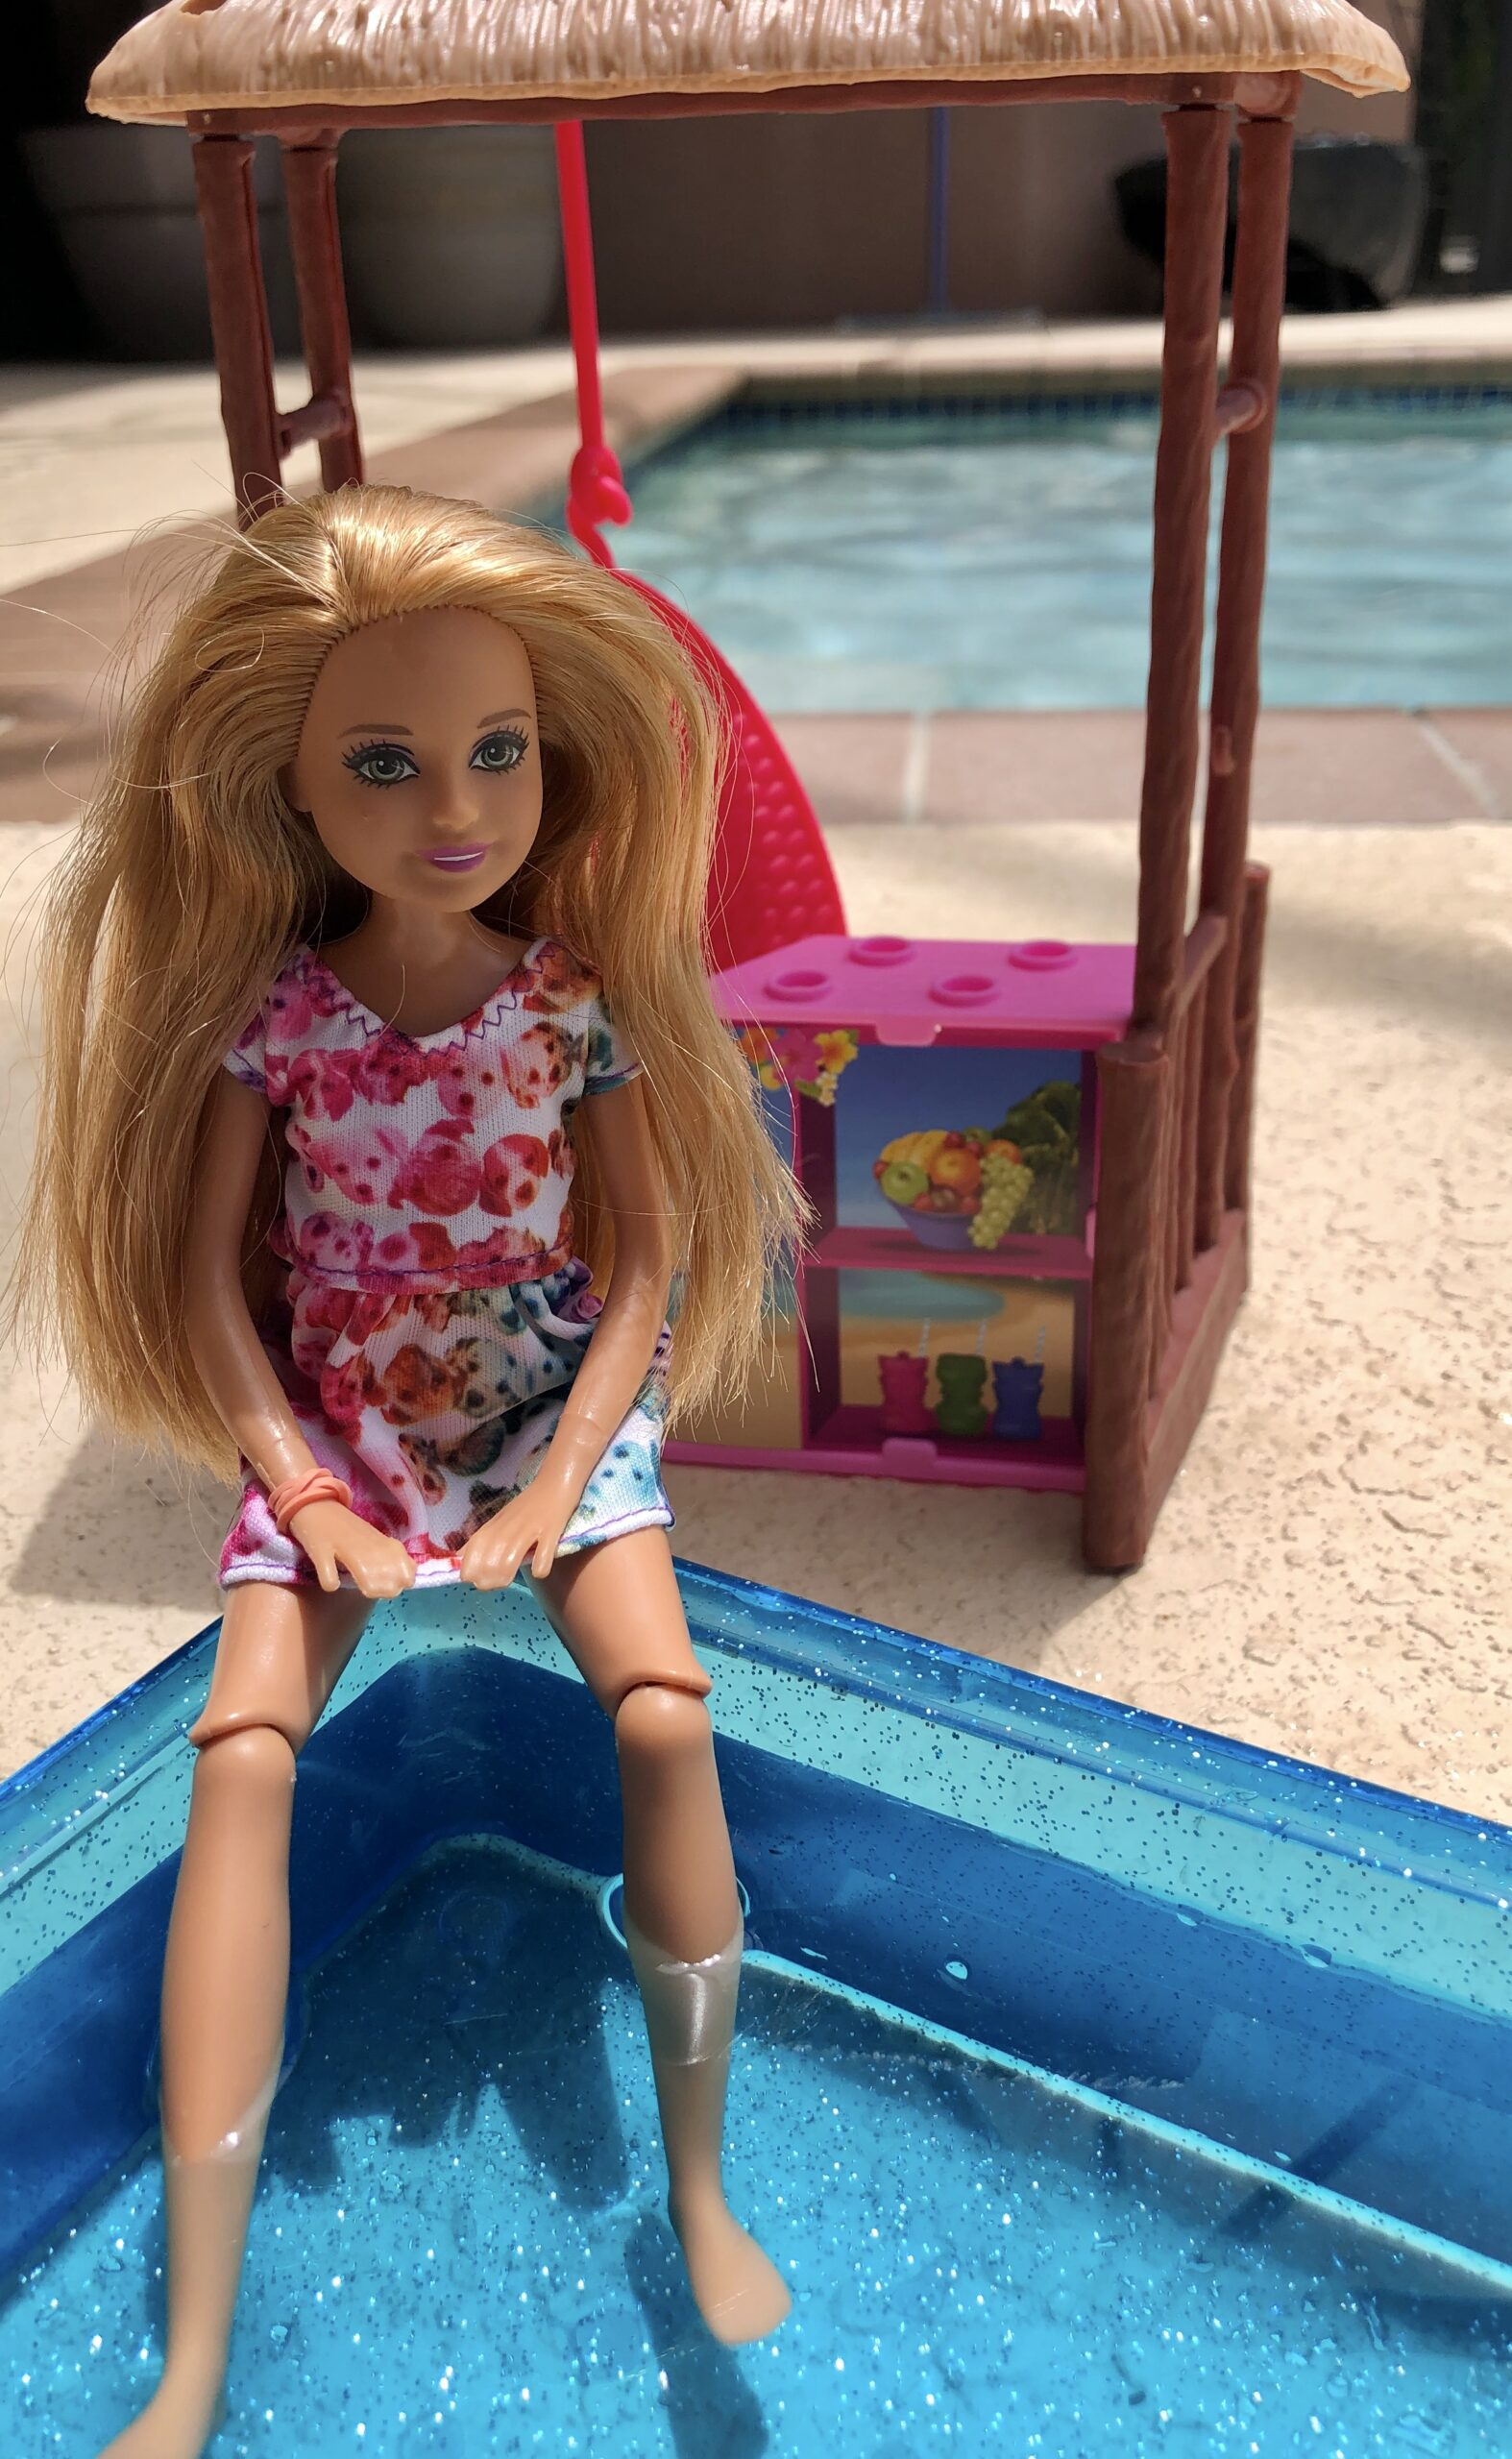 A Stacie Doll sitting with her legs in a pool.